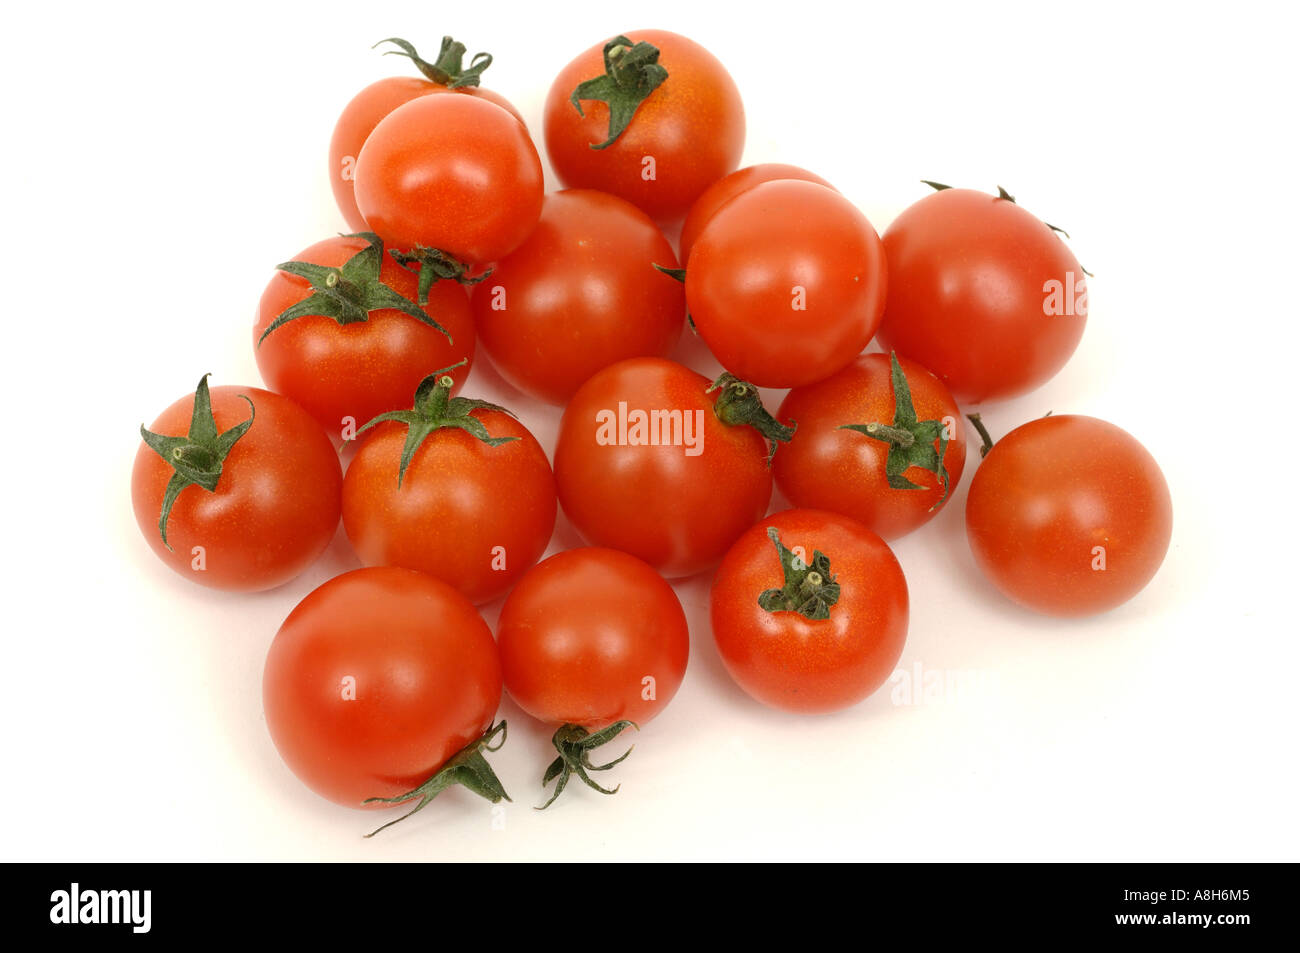 Vegetable produce typical supermarket bought normal cherry tomatoes - Stock Image